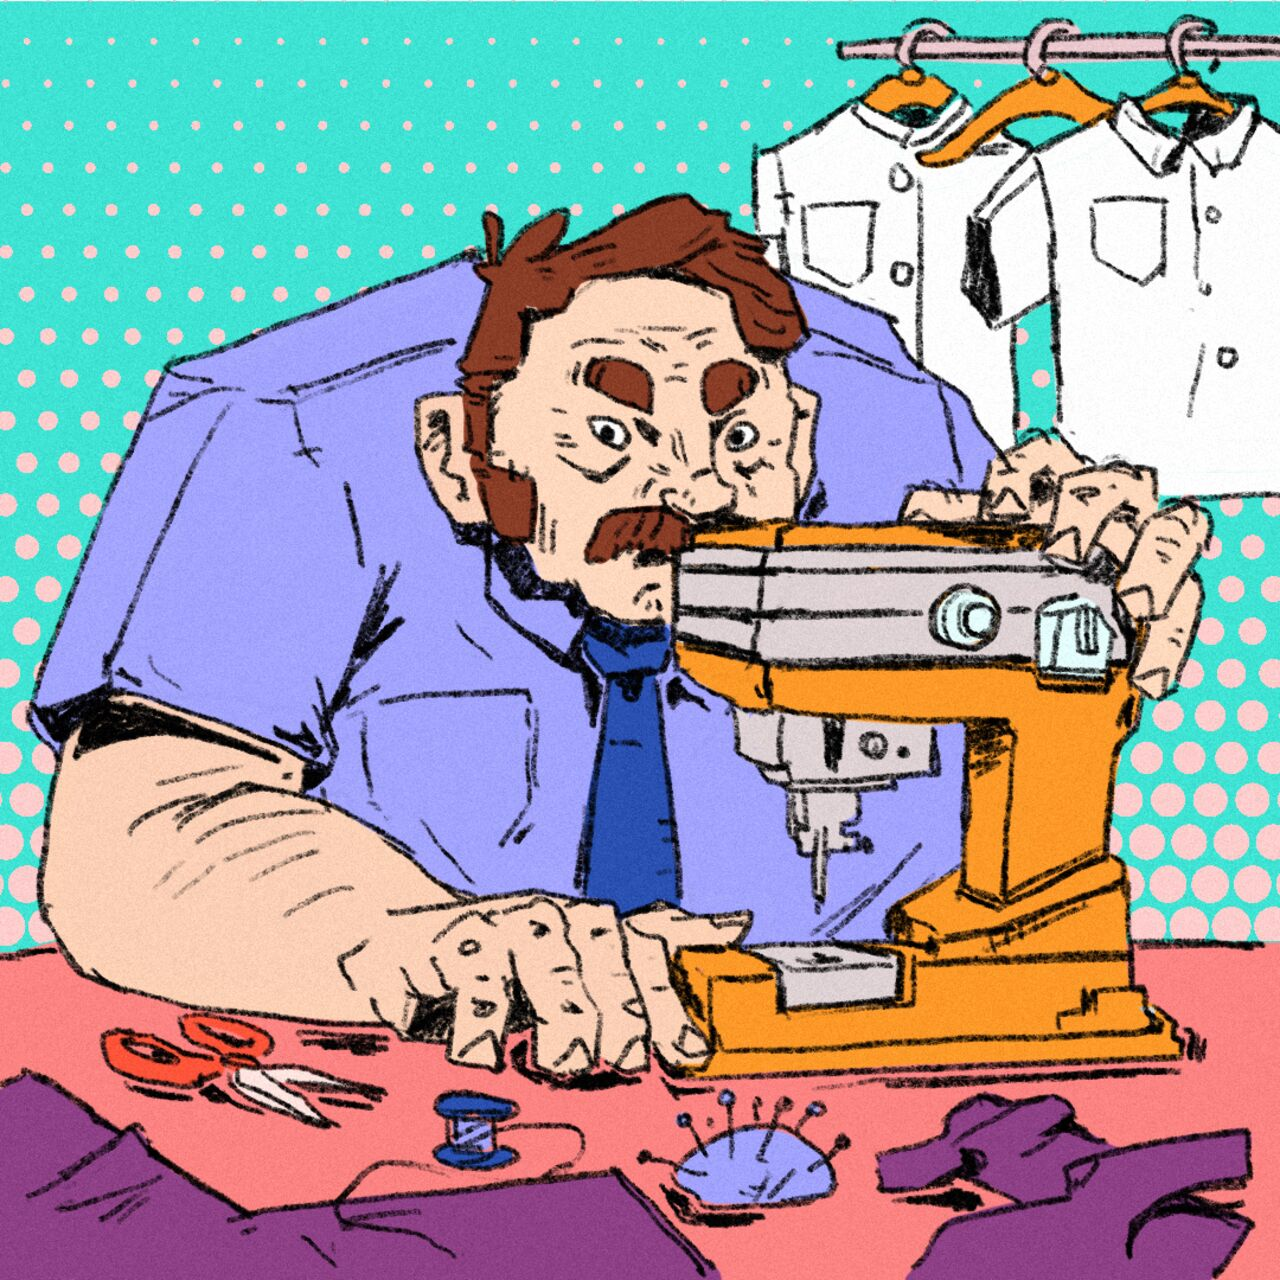 Bright and colourful illustration showing an older man sat at a sewing machine looking moody.